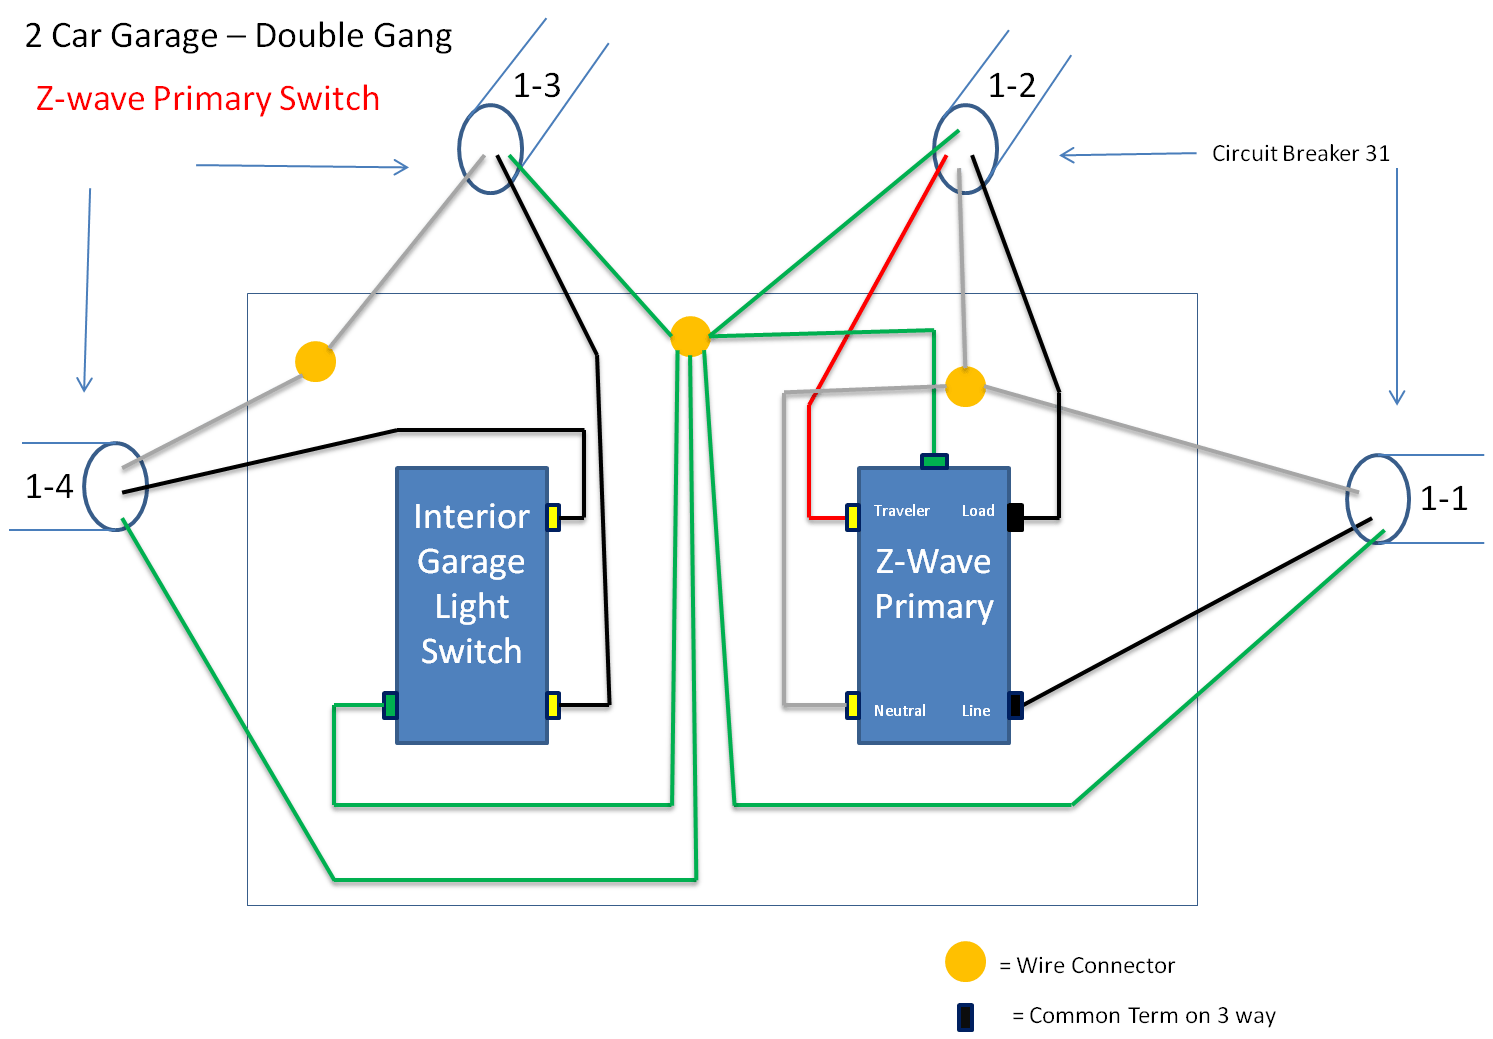 wiring diagram 3 way switch pride victory 10 scooter a 220 oven free engine image for user